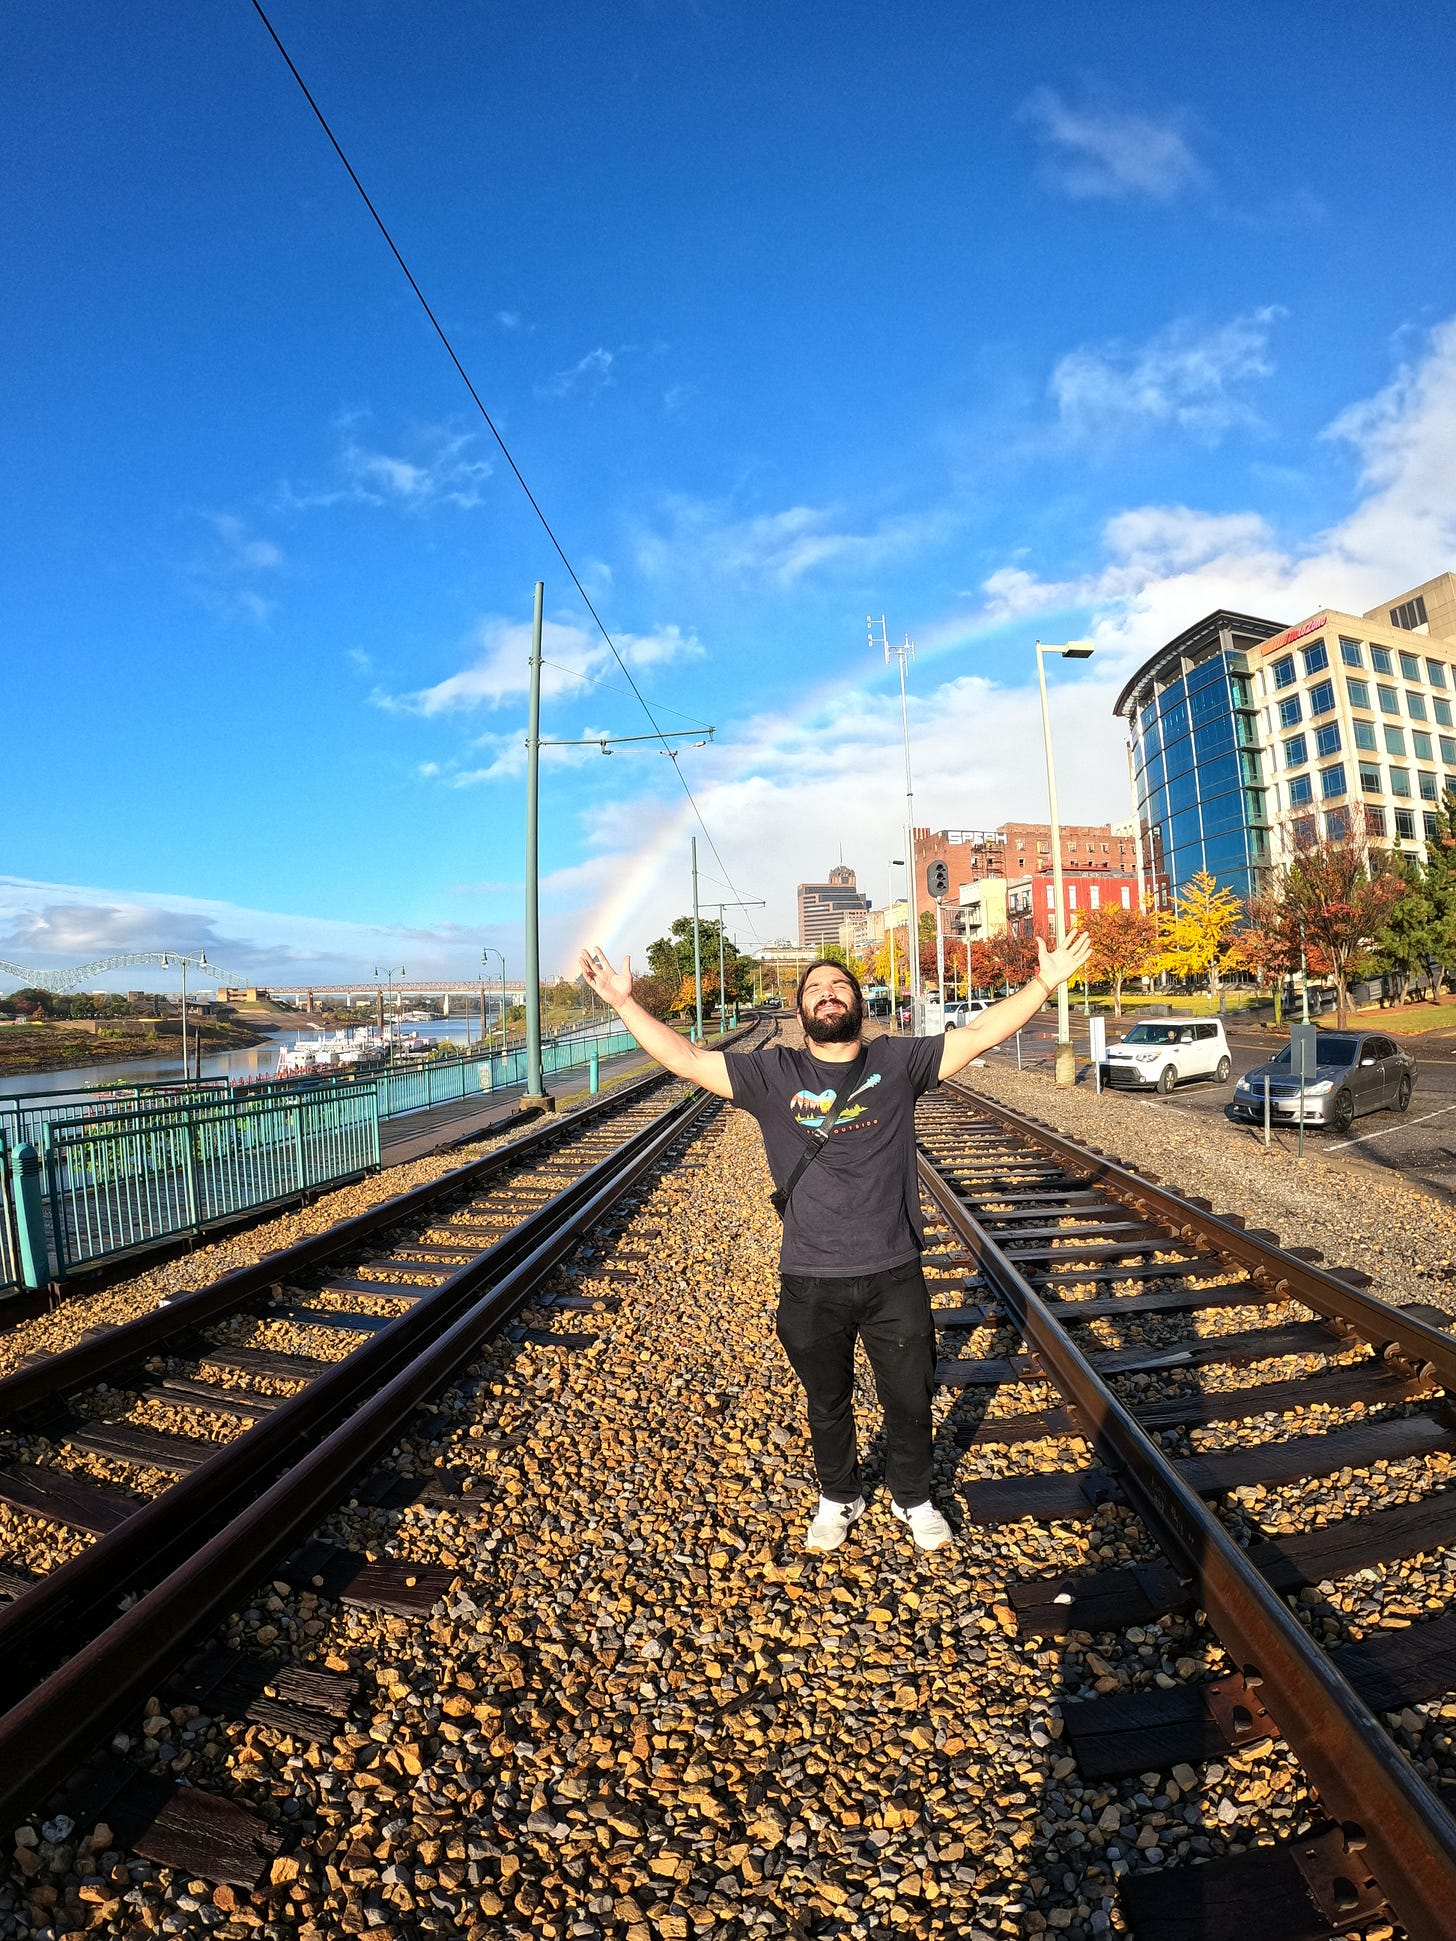 anthony under a rainbow on the train tracks with his arms stretched out